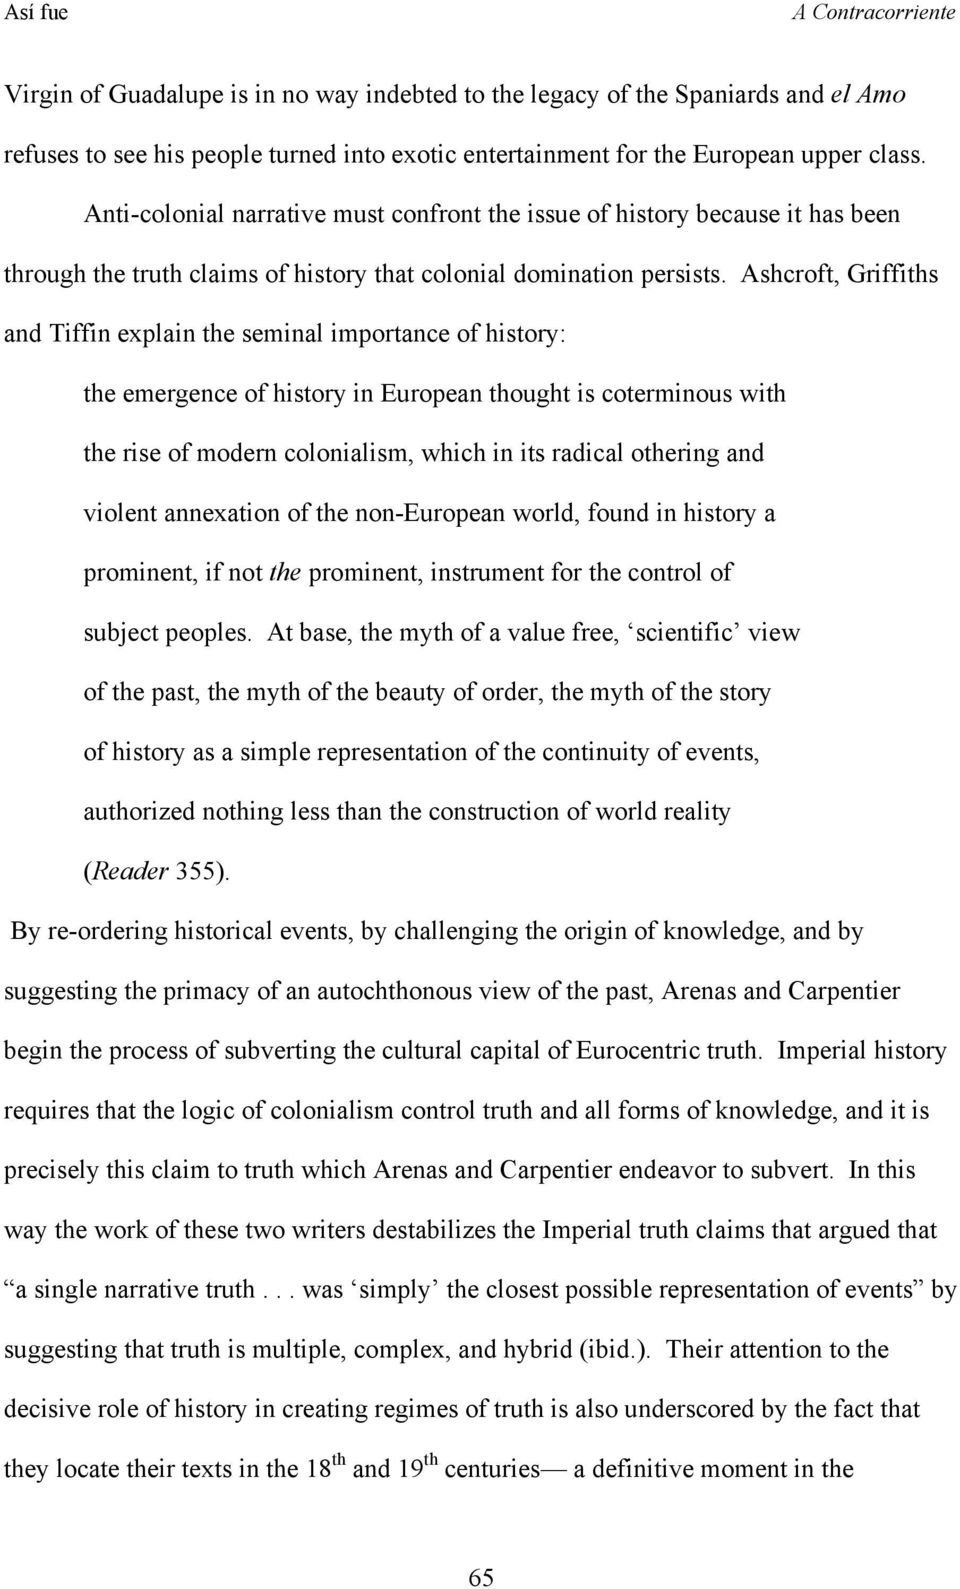 Ashcroft, Griffiths and Tiffin explain the seminal importance of history: the emergence of history in European thought is coterminous with the rise of modern colonialism, which in its radical